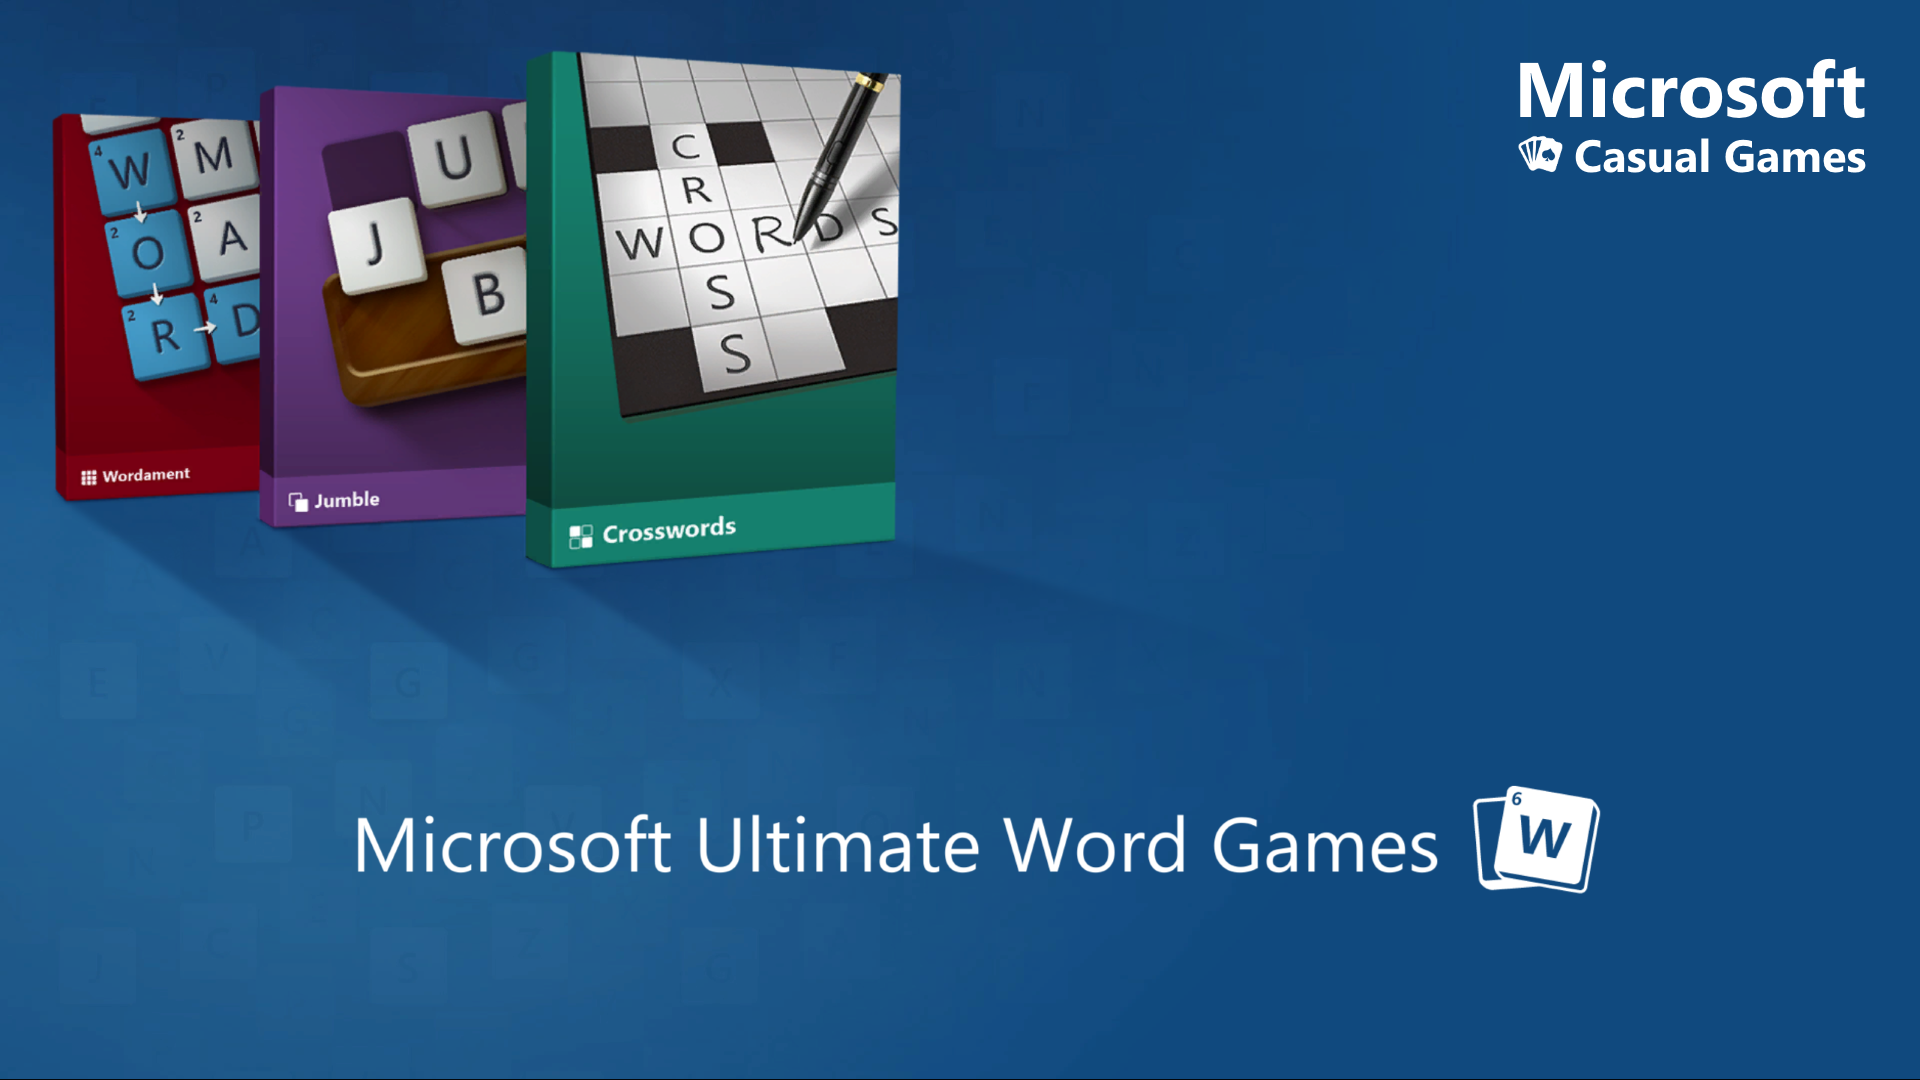 Microsoft Ultimate Word Games updates on Windows 10 with